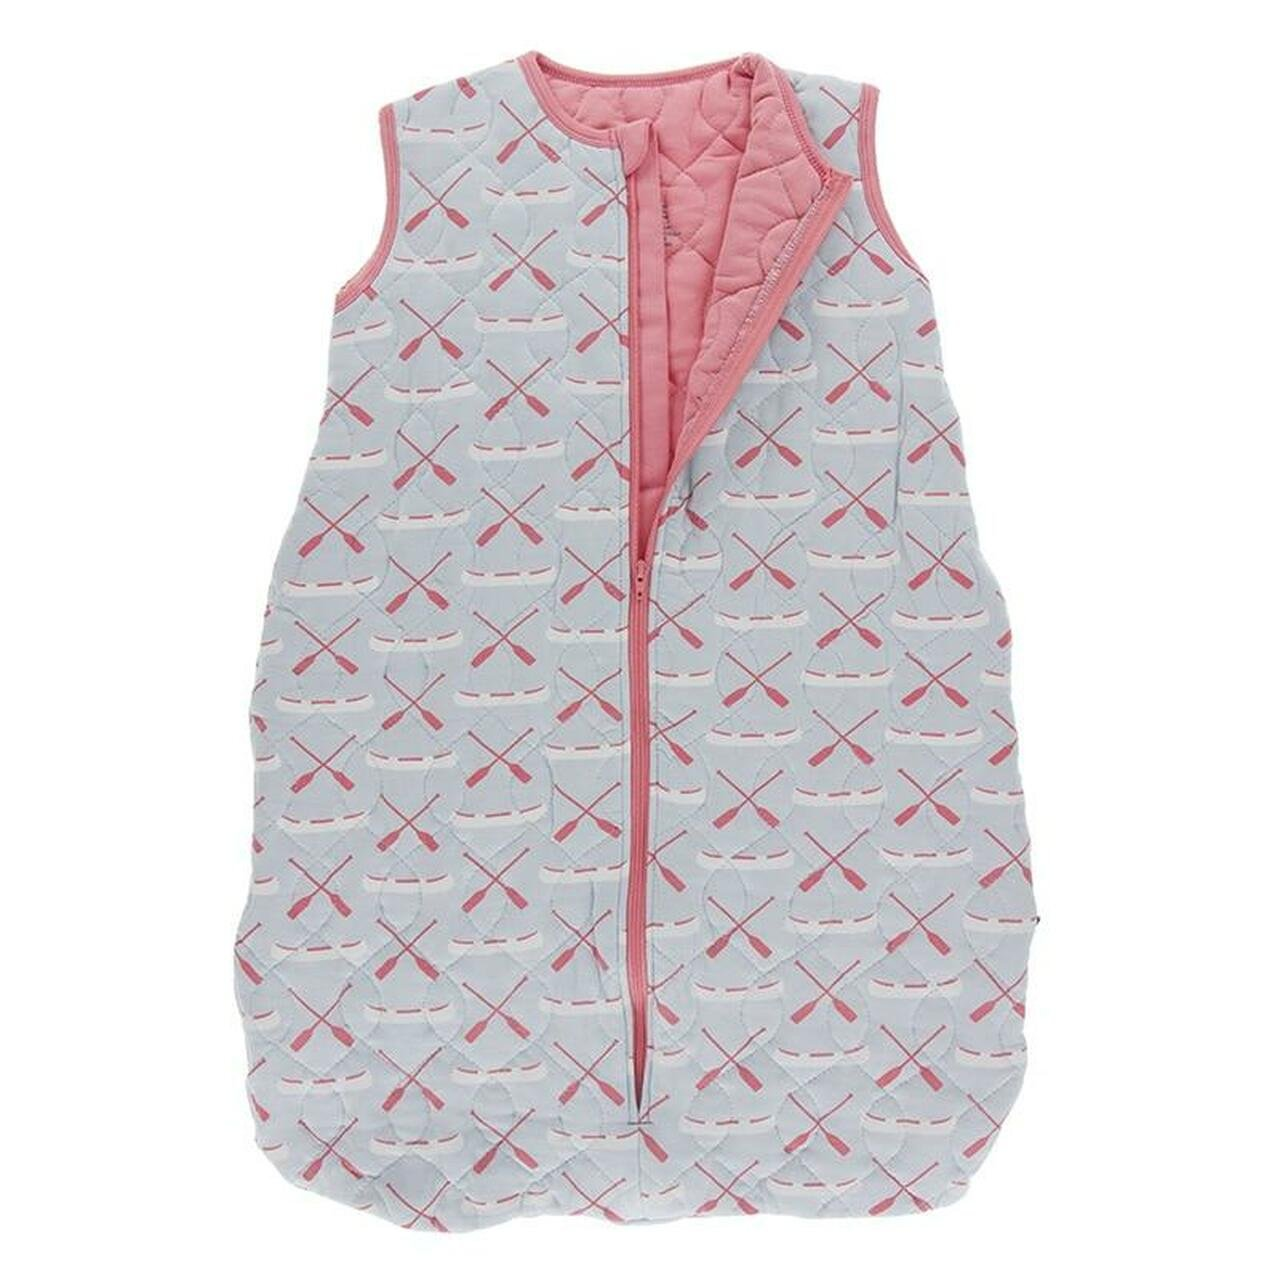 Bamboo Quilted Baby Sleeping Bag - Strawberry Canoe & Paddles